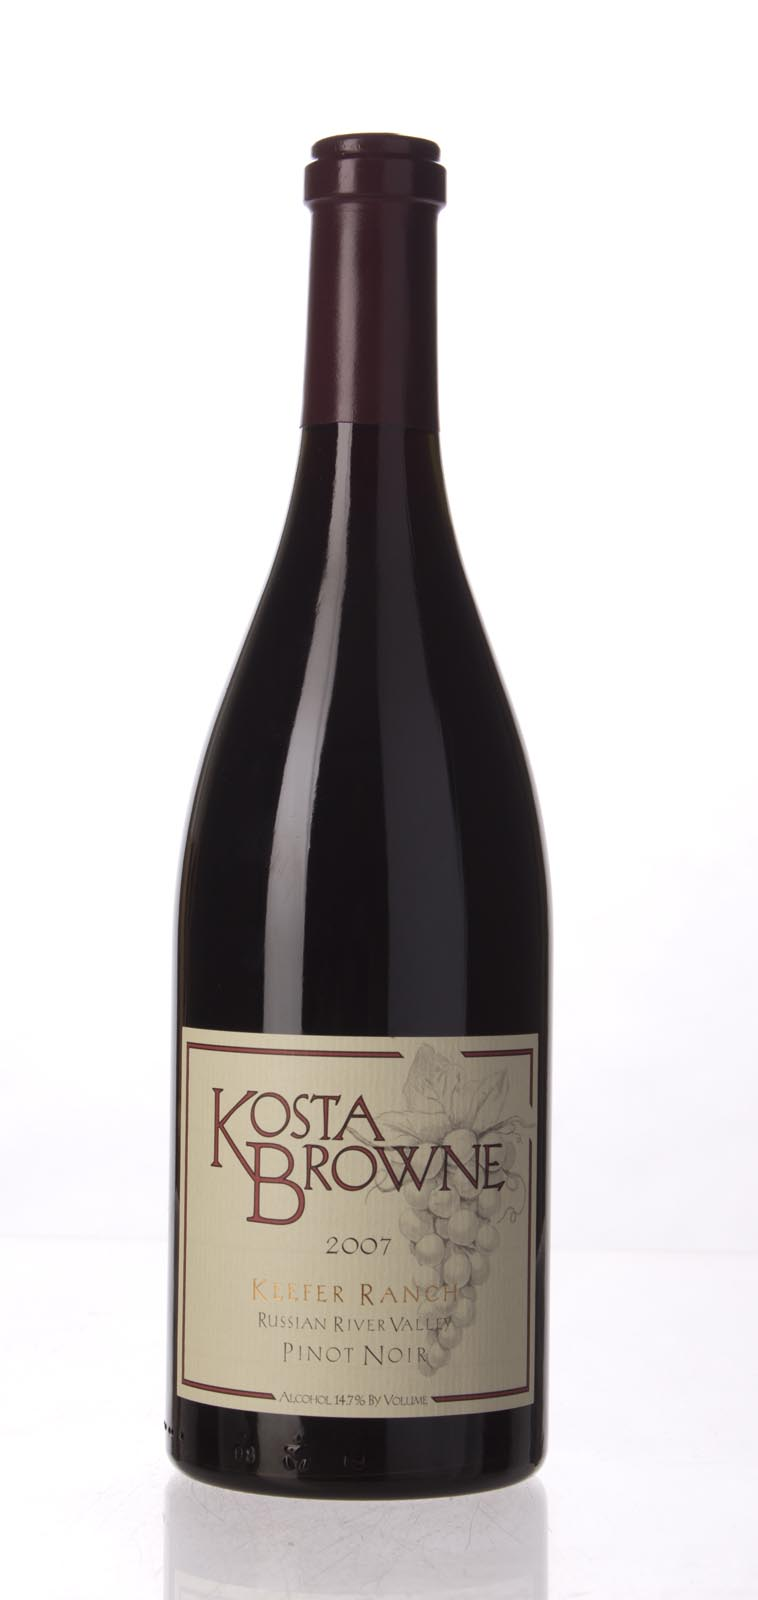 Kosta Browne Pinot Noir Keefer Ranch 2007, 750mL (ST93, WS95) from The BPW - Merchants of rare and fine wines.